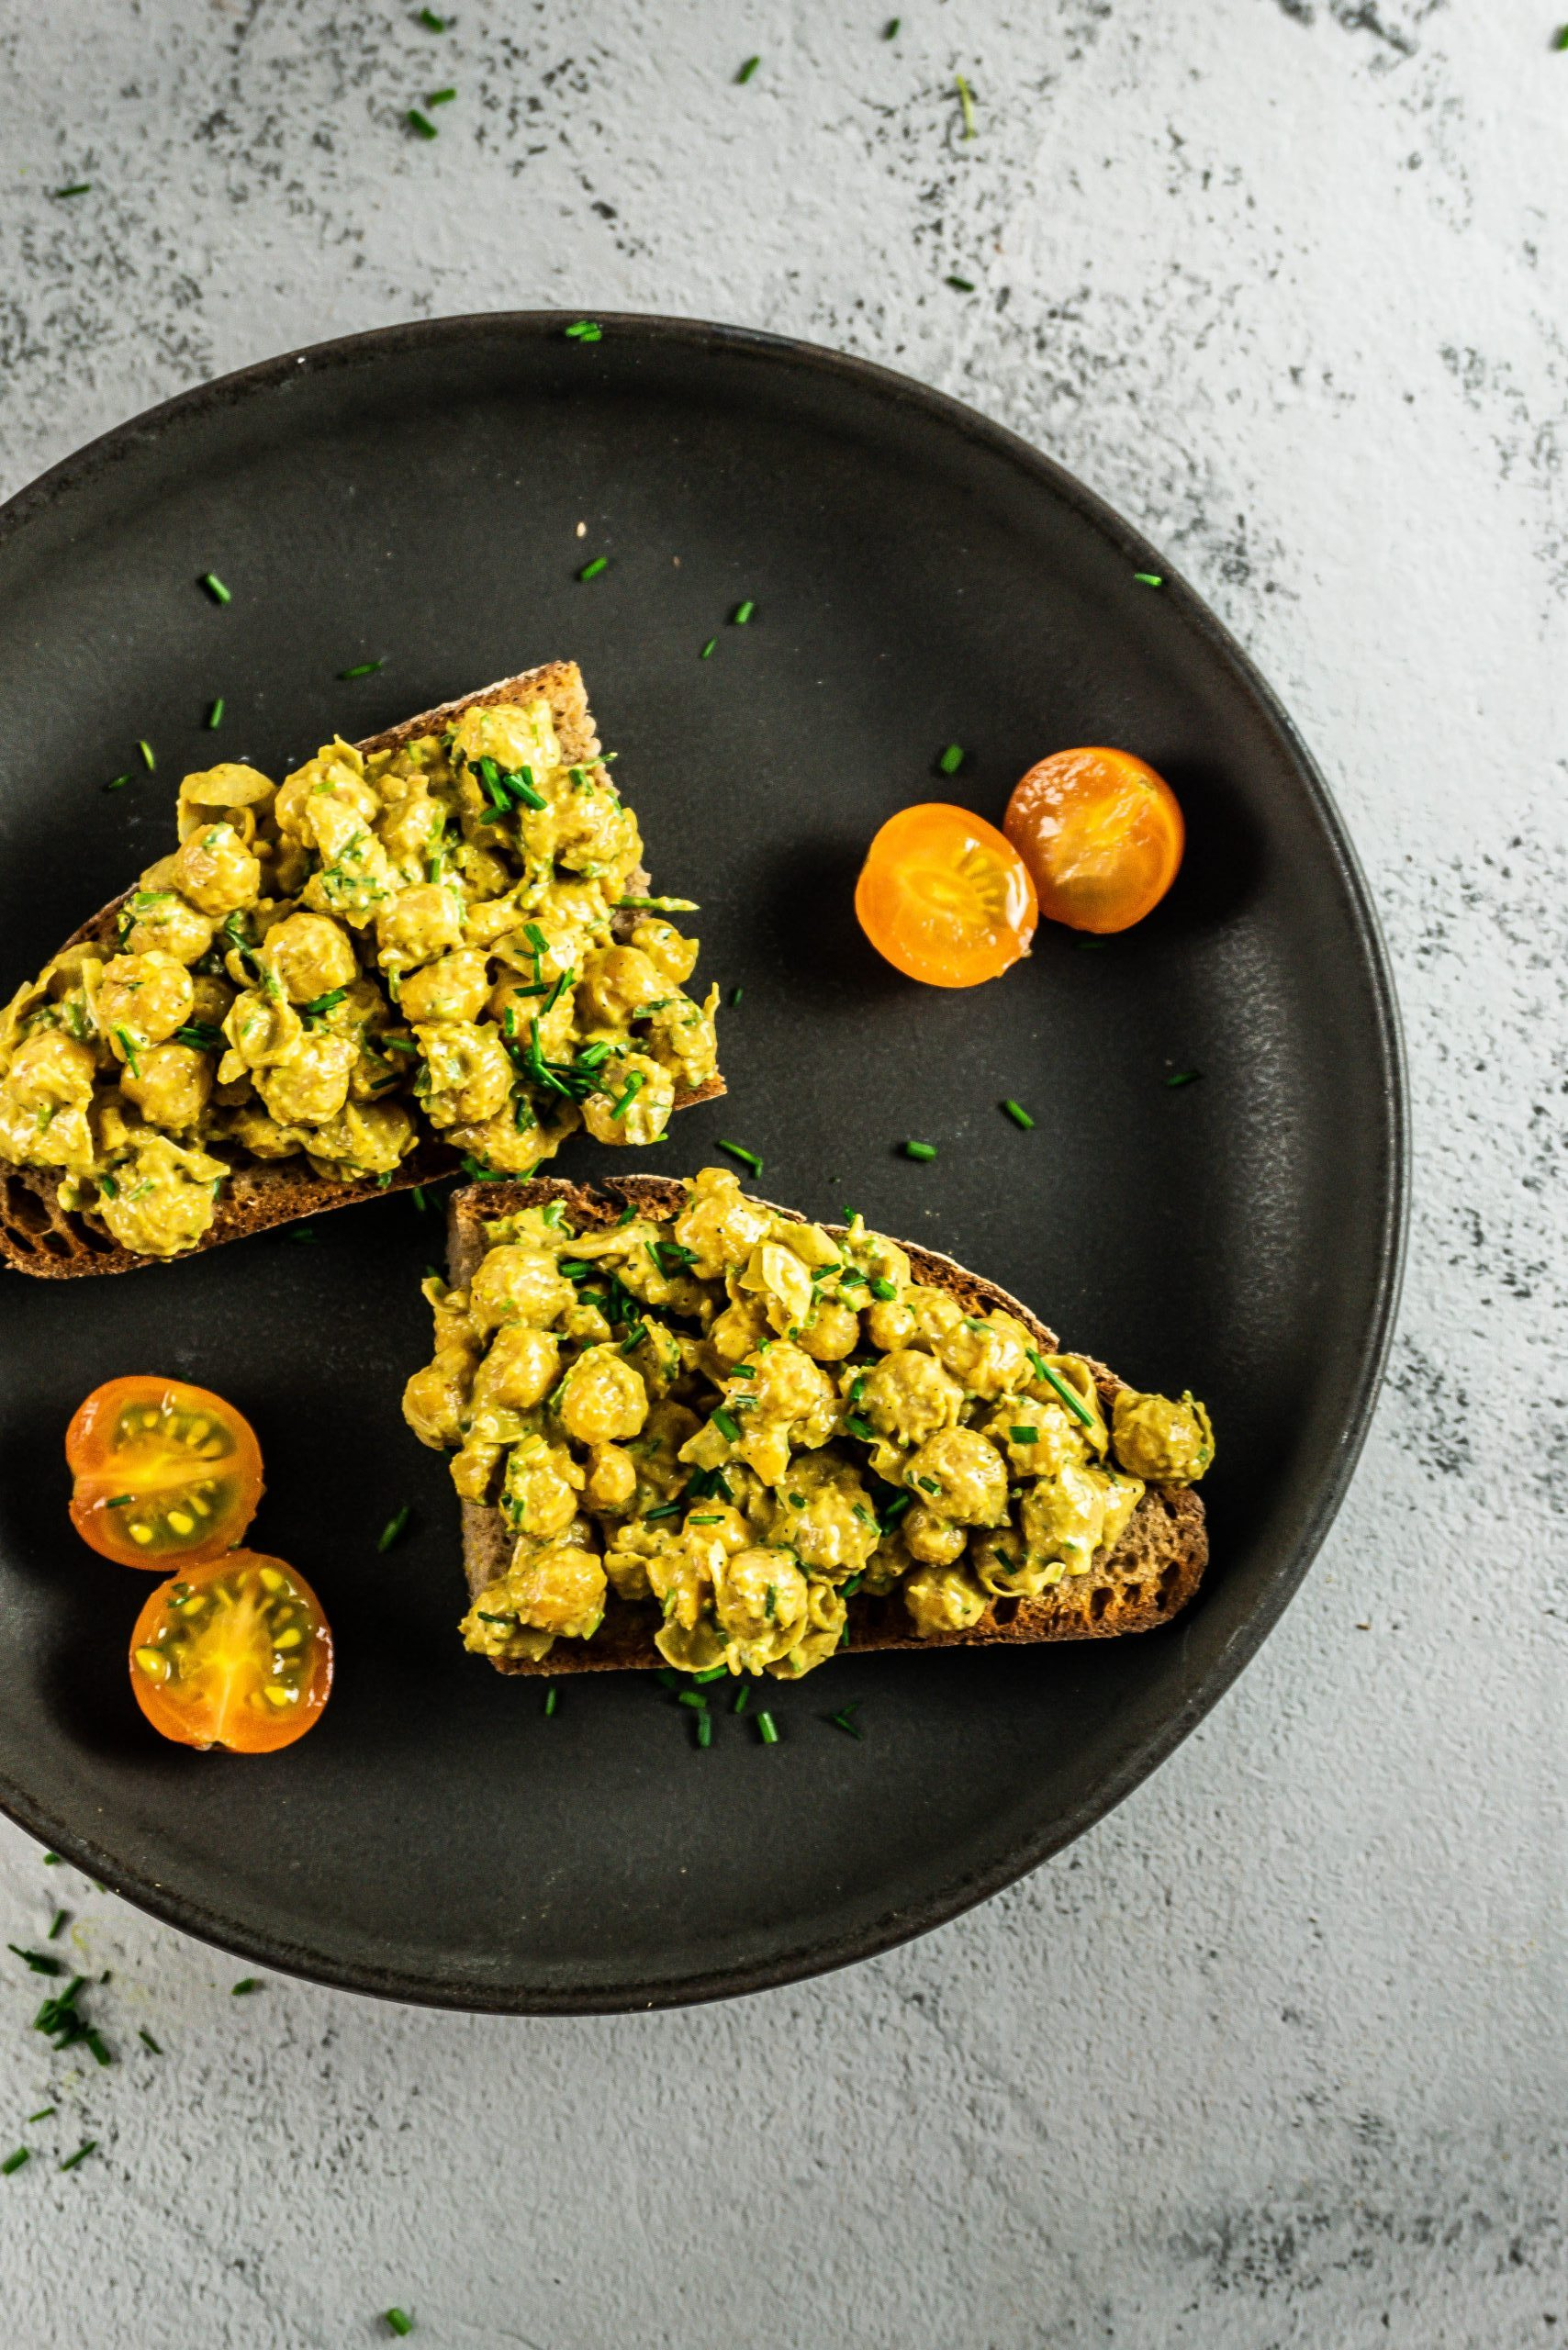 Vegan Curried Chickpea Spread on a slice of bread photographed on a dark plate